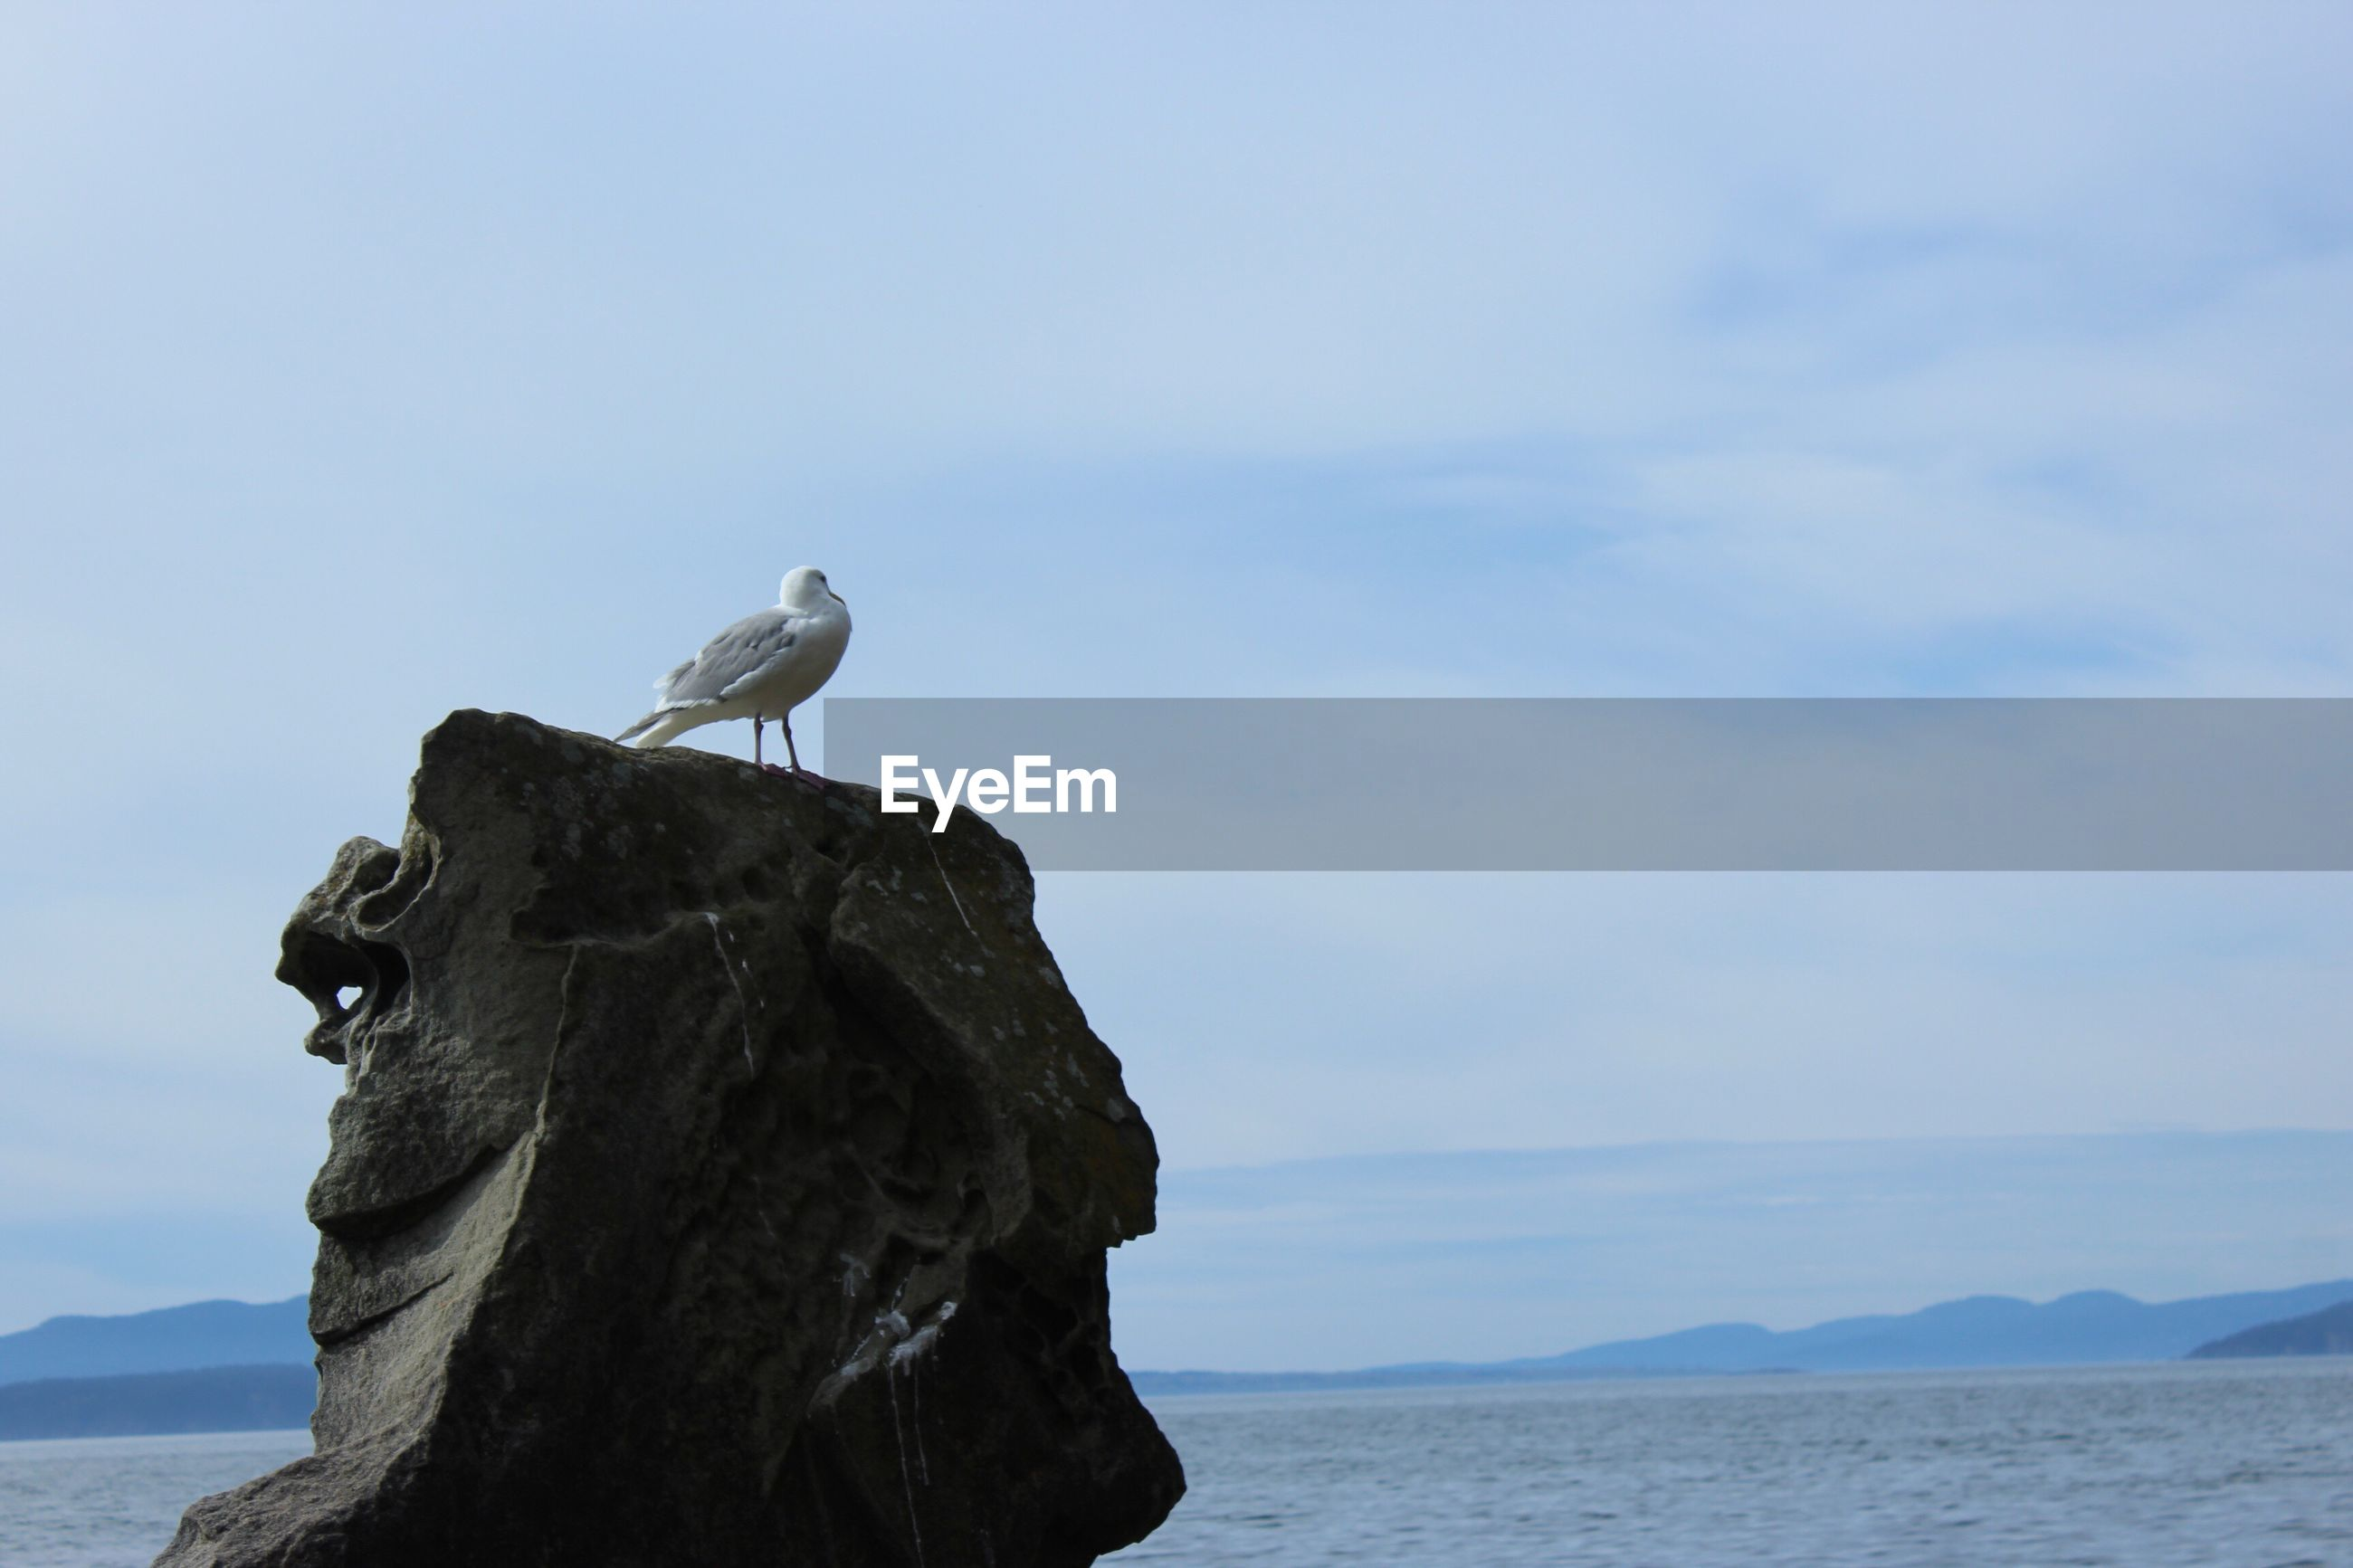 animal themes, animals in the wild, sea, wildlife, one animal, bird, water, sky, horizon over water, rock - object, perching, nature, seagull, focus on foreground, beauty in nature, day, outdoors, rock, side view, full length